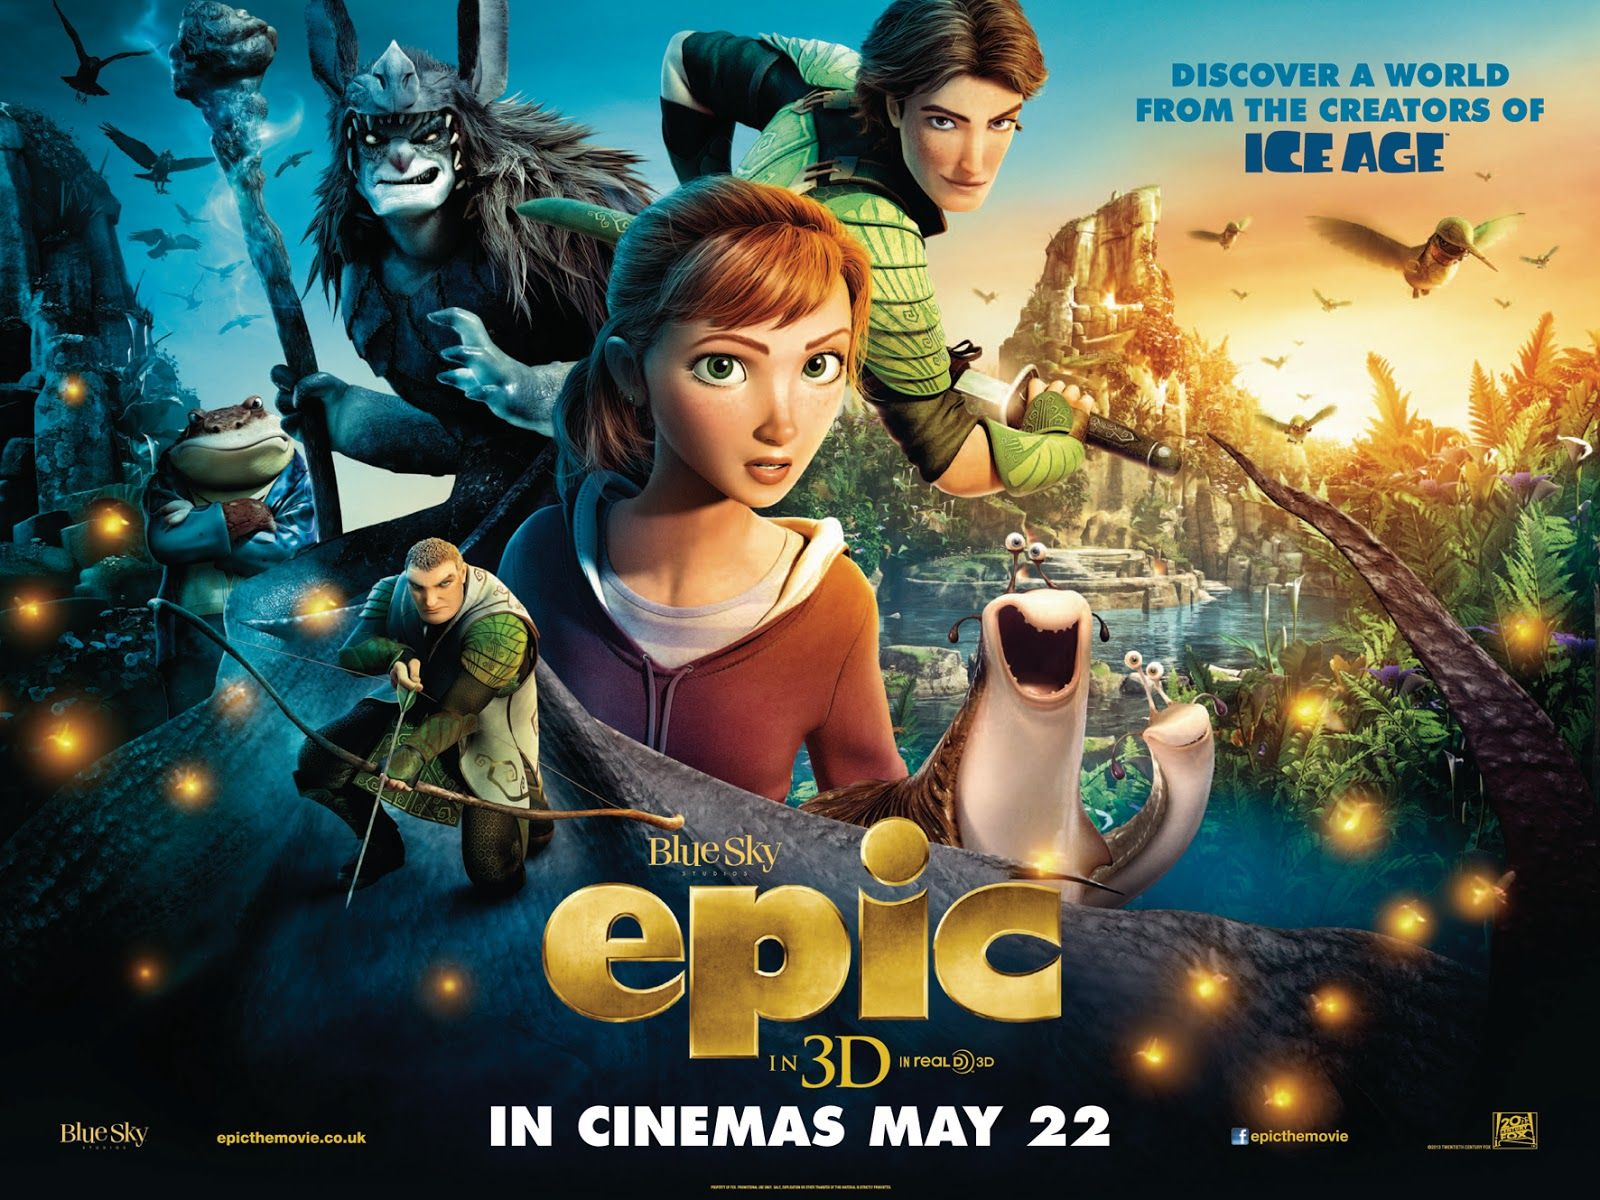 epic movie Google Search Best movies 2013/2014/2015